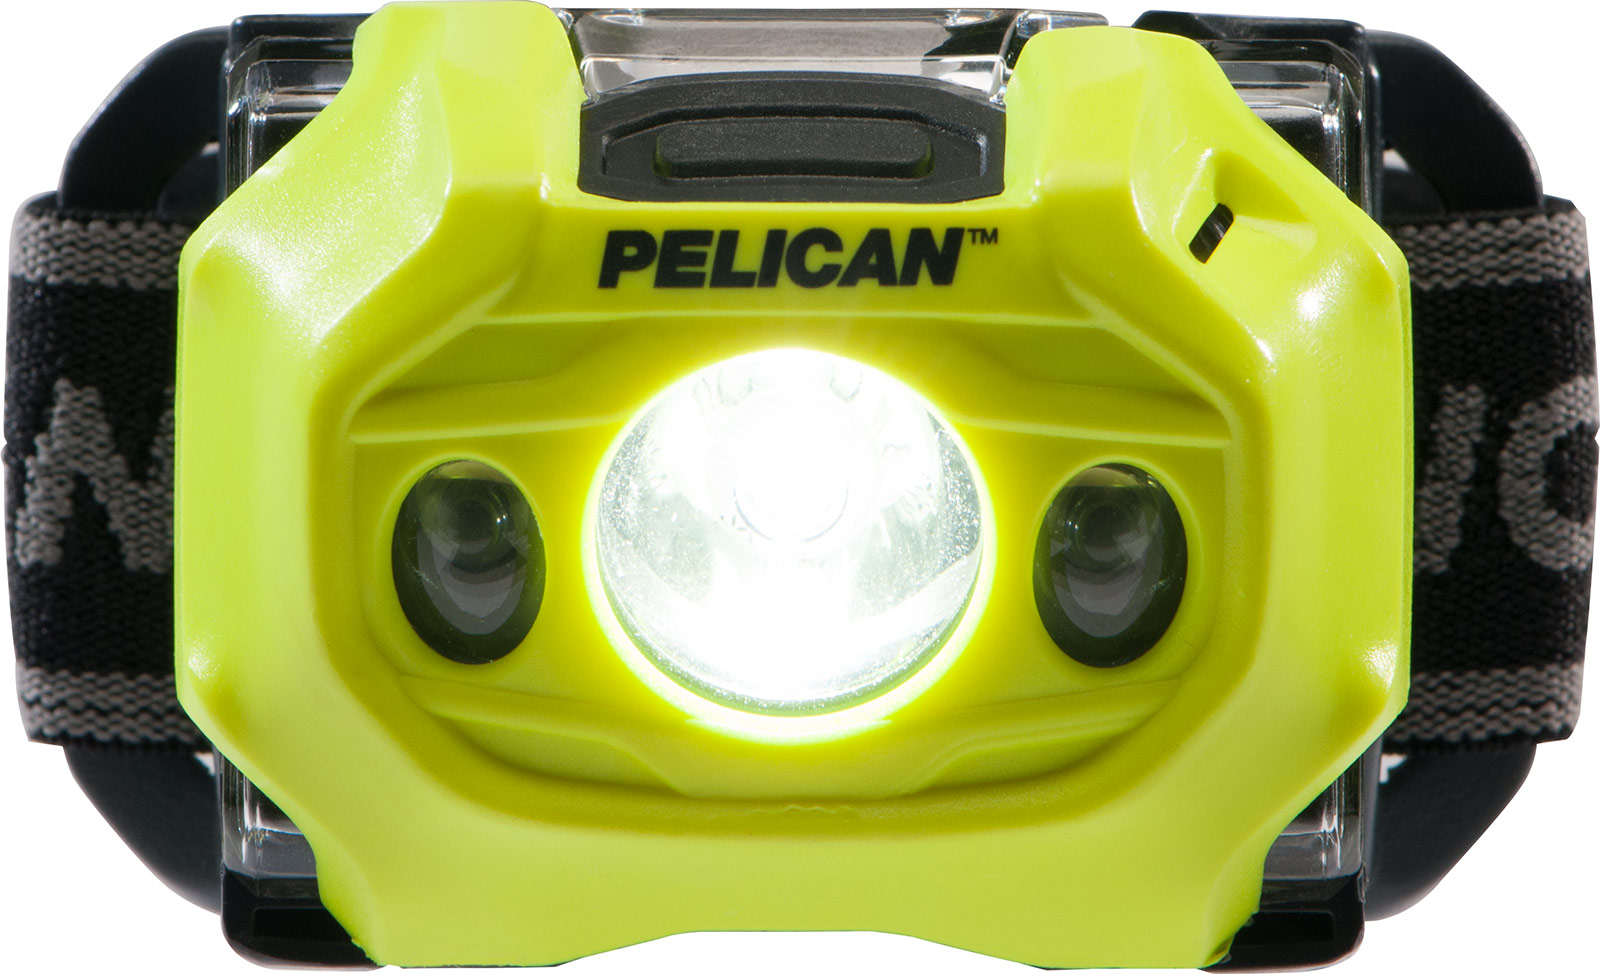 pelican 2765 multi mode led headlamp